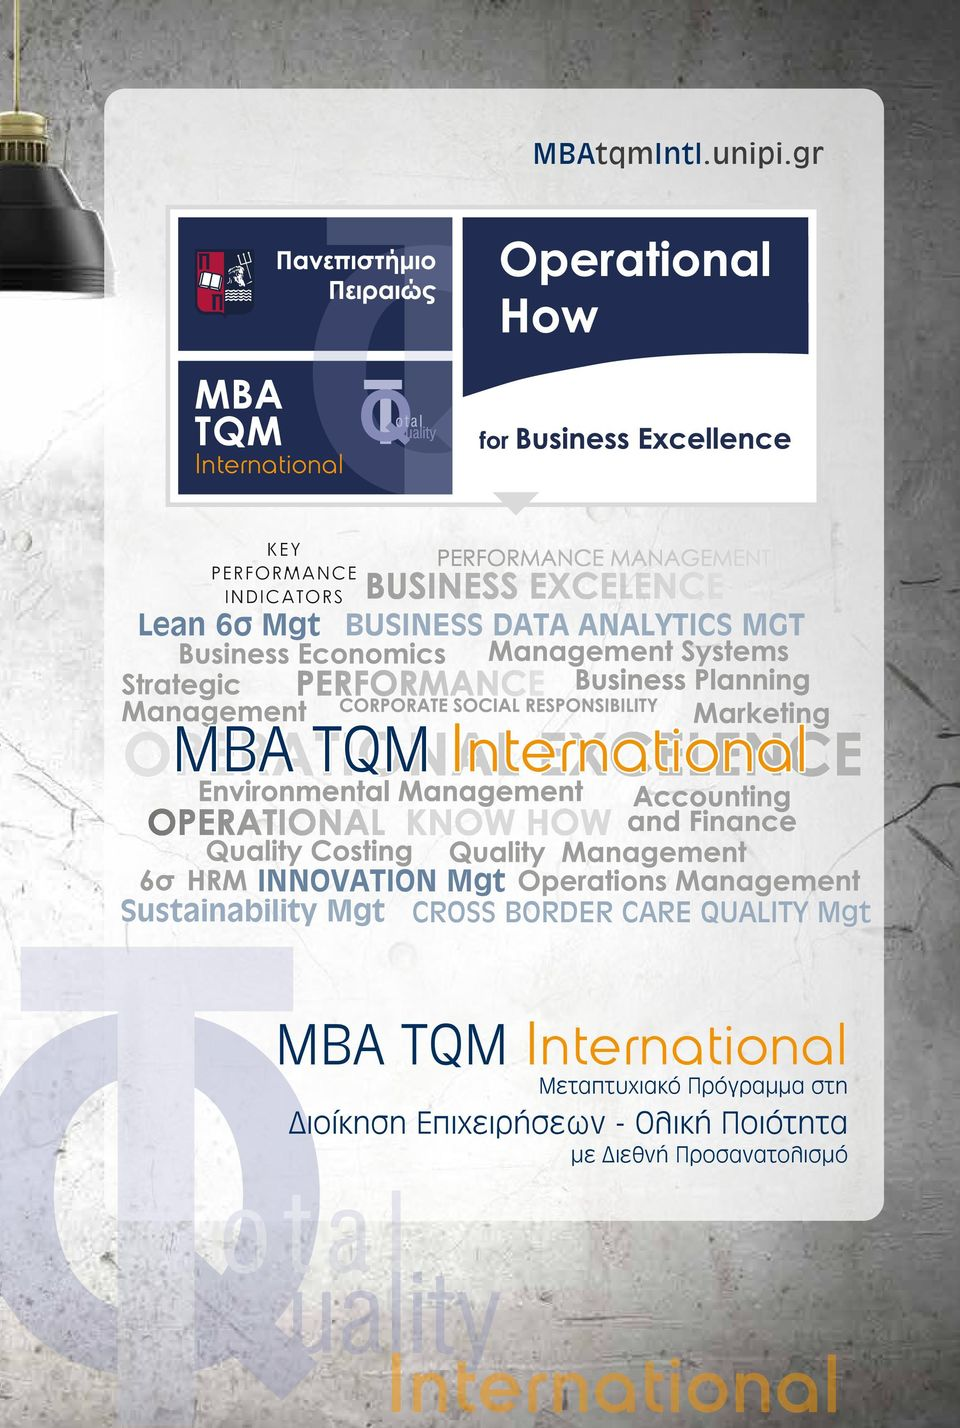 TQM International INNOVATION Mgt Sustainability Mgt CROSS BORDER CARE